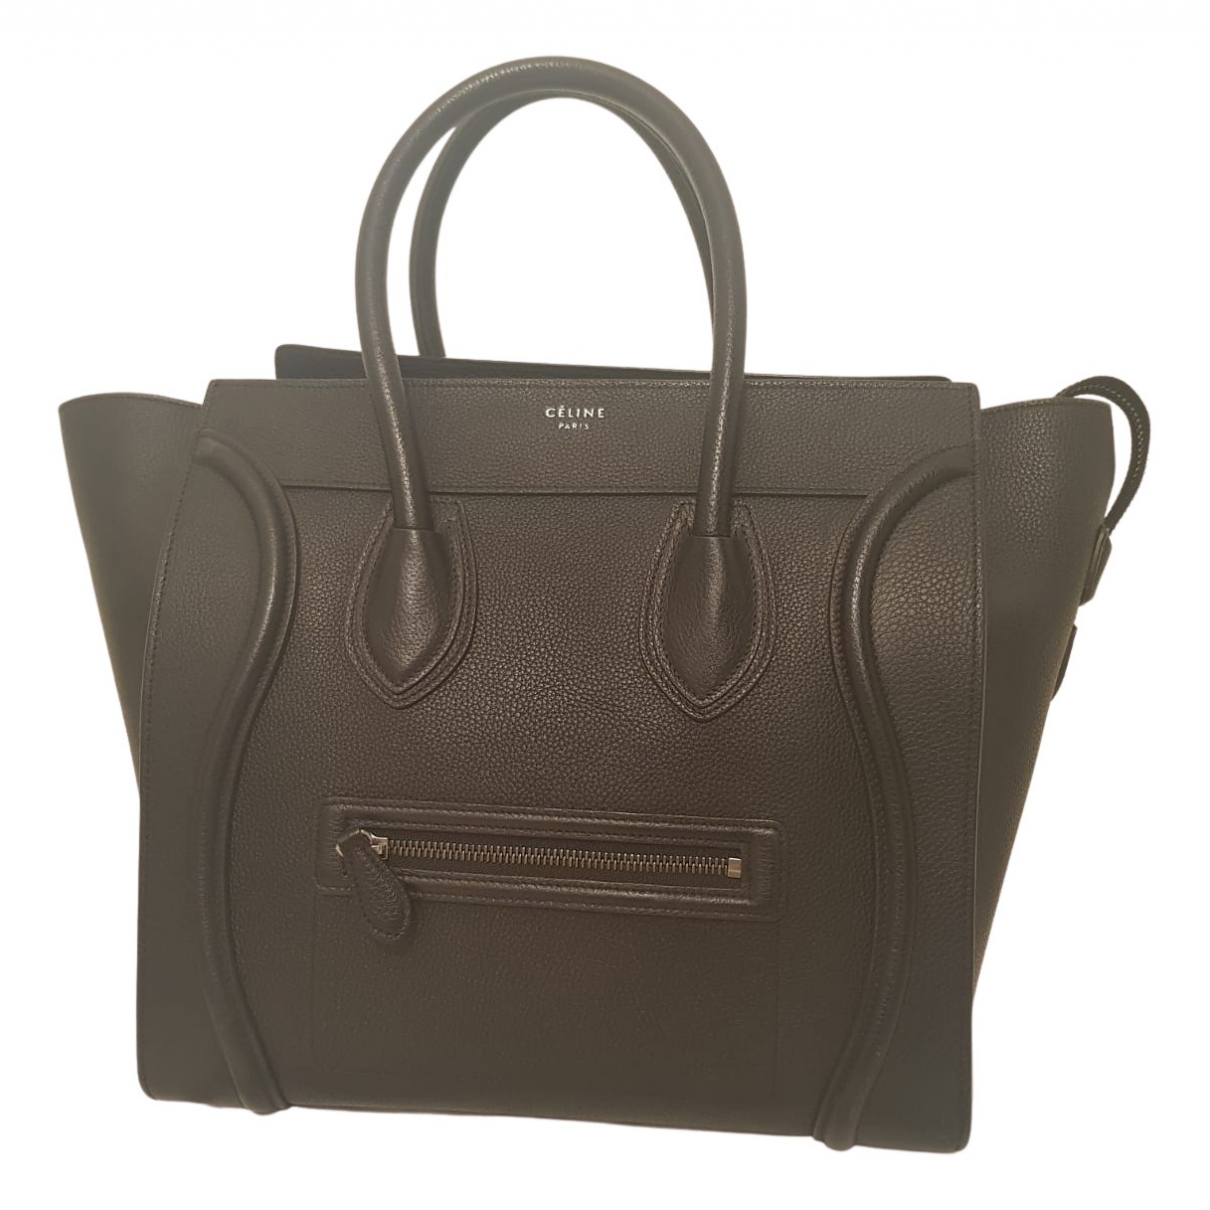 Celine Luggage Black Leather handbag for Women N